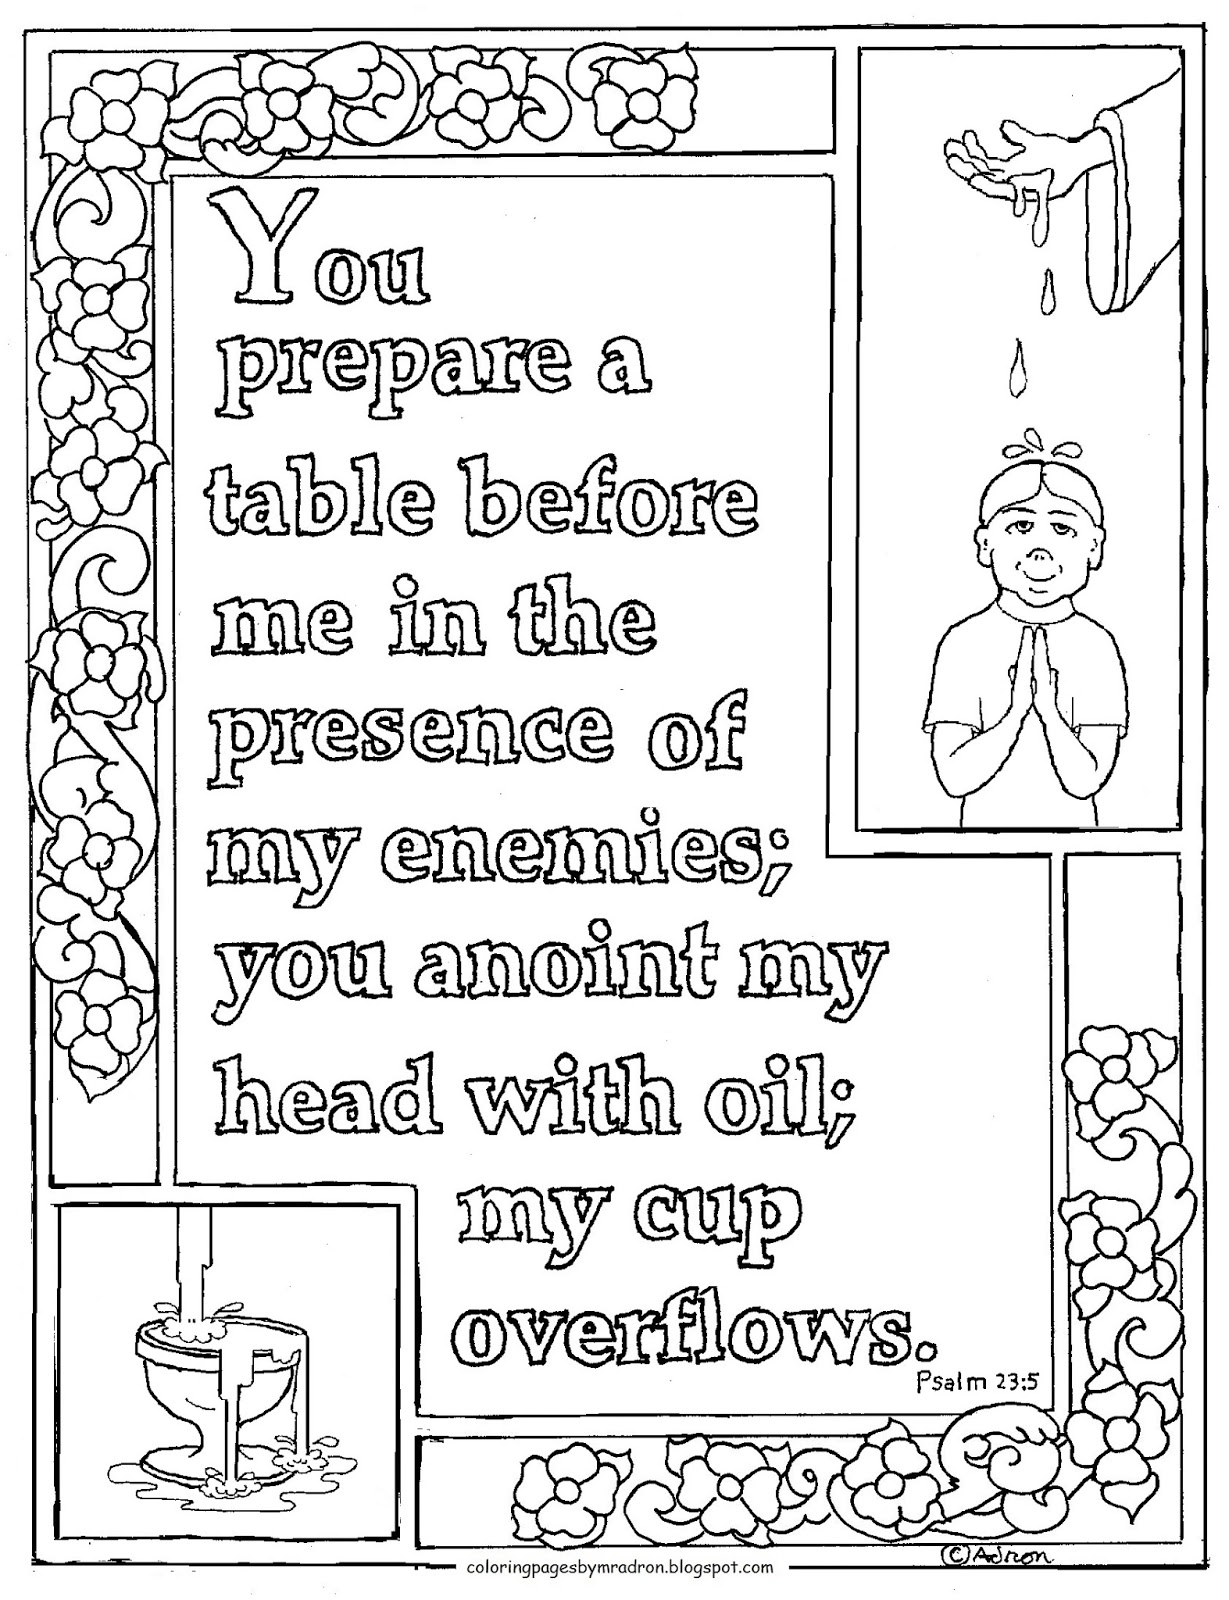 psalm 23 coloring page -